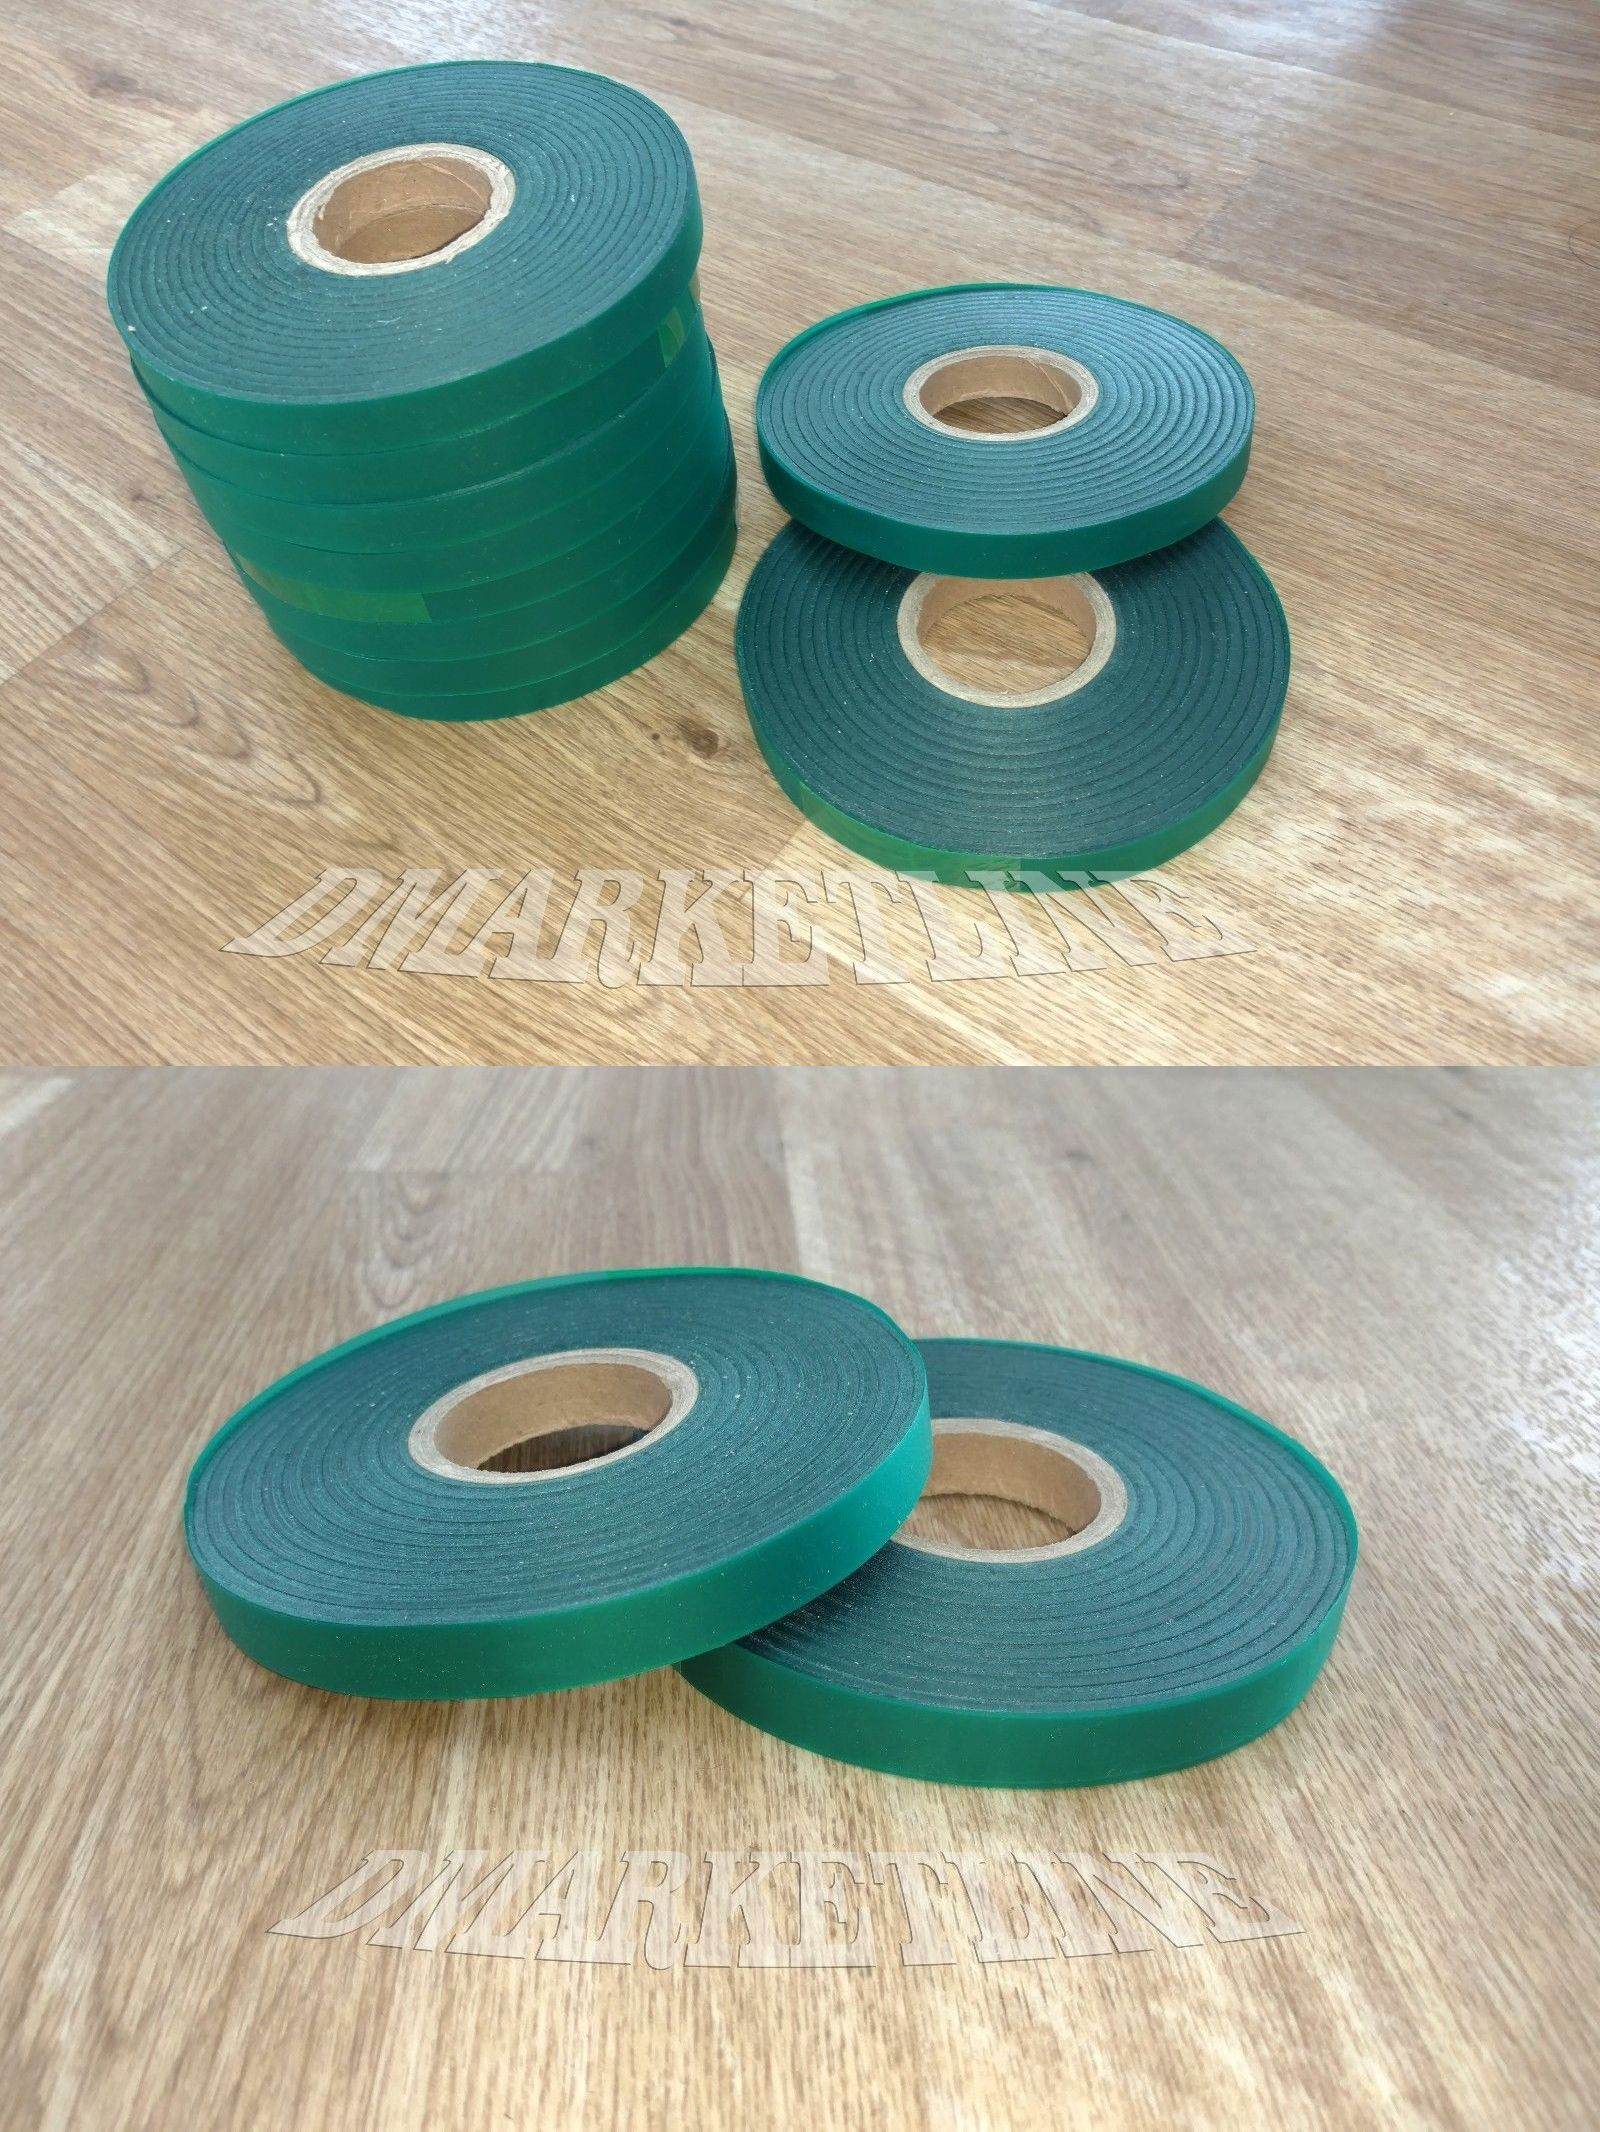 10 Rolls 4mil Each 300 Feet X 1 2 Stretch Tie Tape Plant Ribbon Garden Vinyl Plant Ties Vinyl Plants